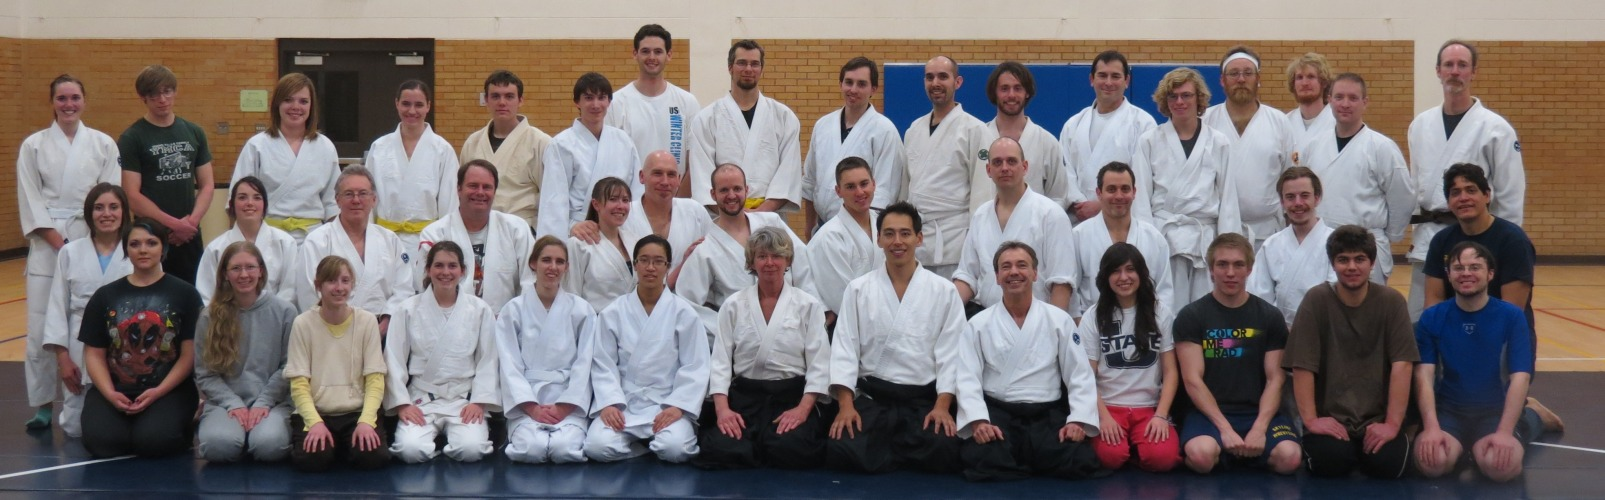 Friday night group photo from Aikido Seminar at Jyushinkan Dojo with Tatsuo Toyoda Sensei.